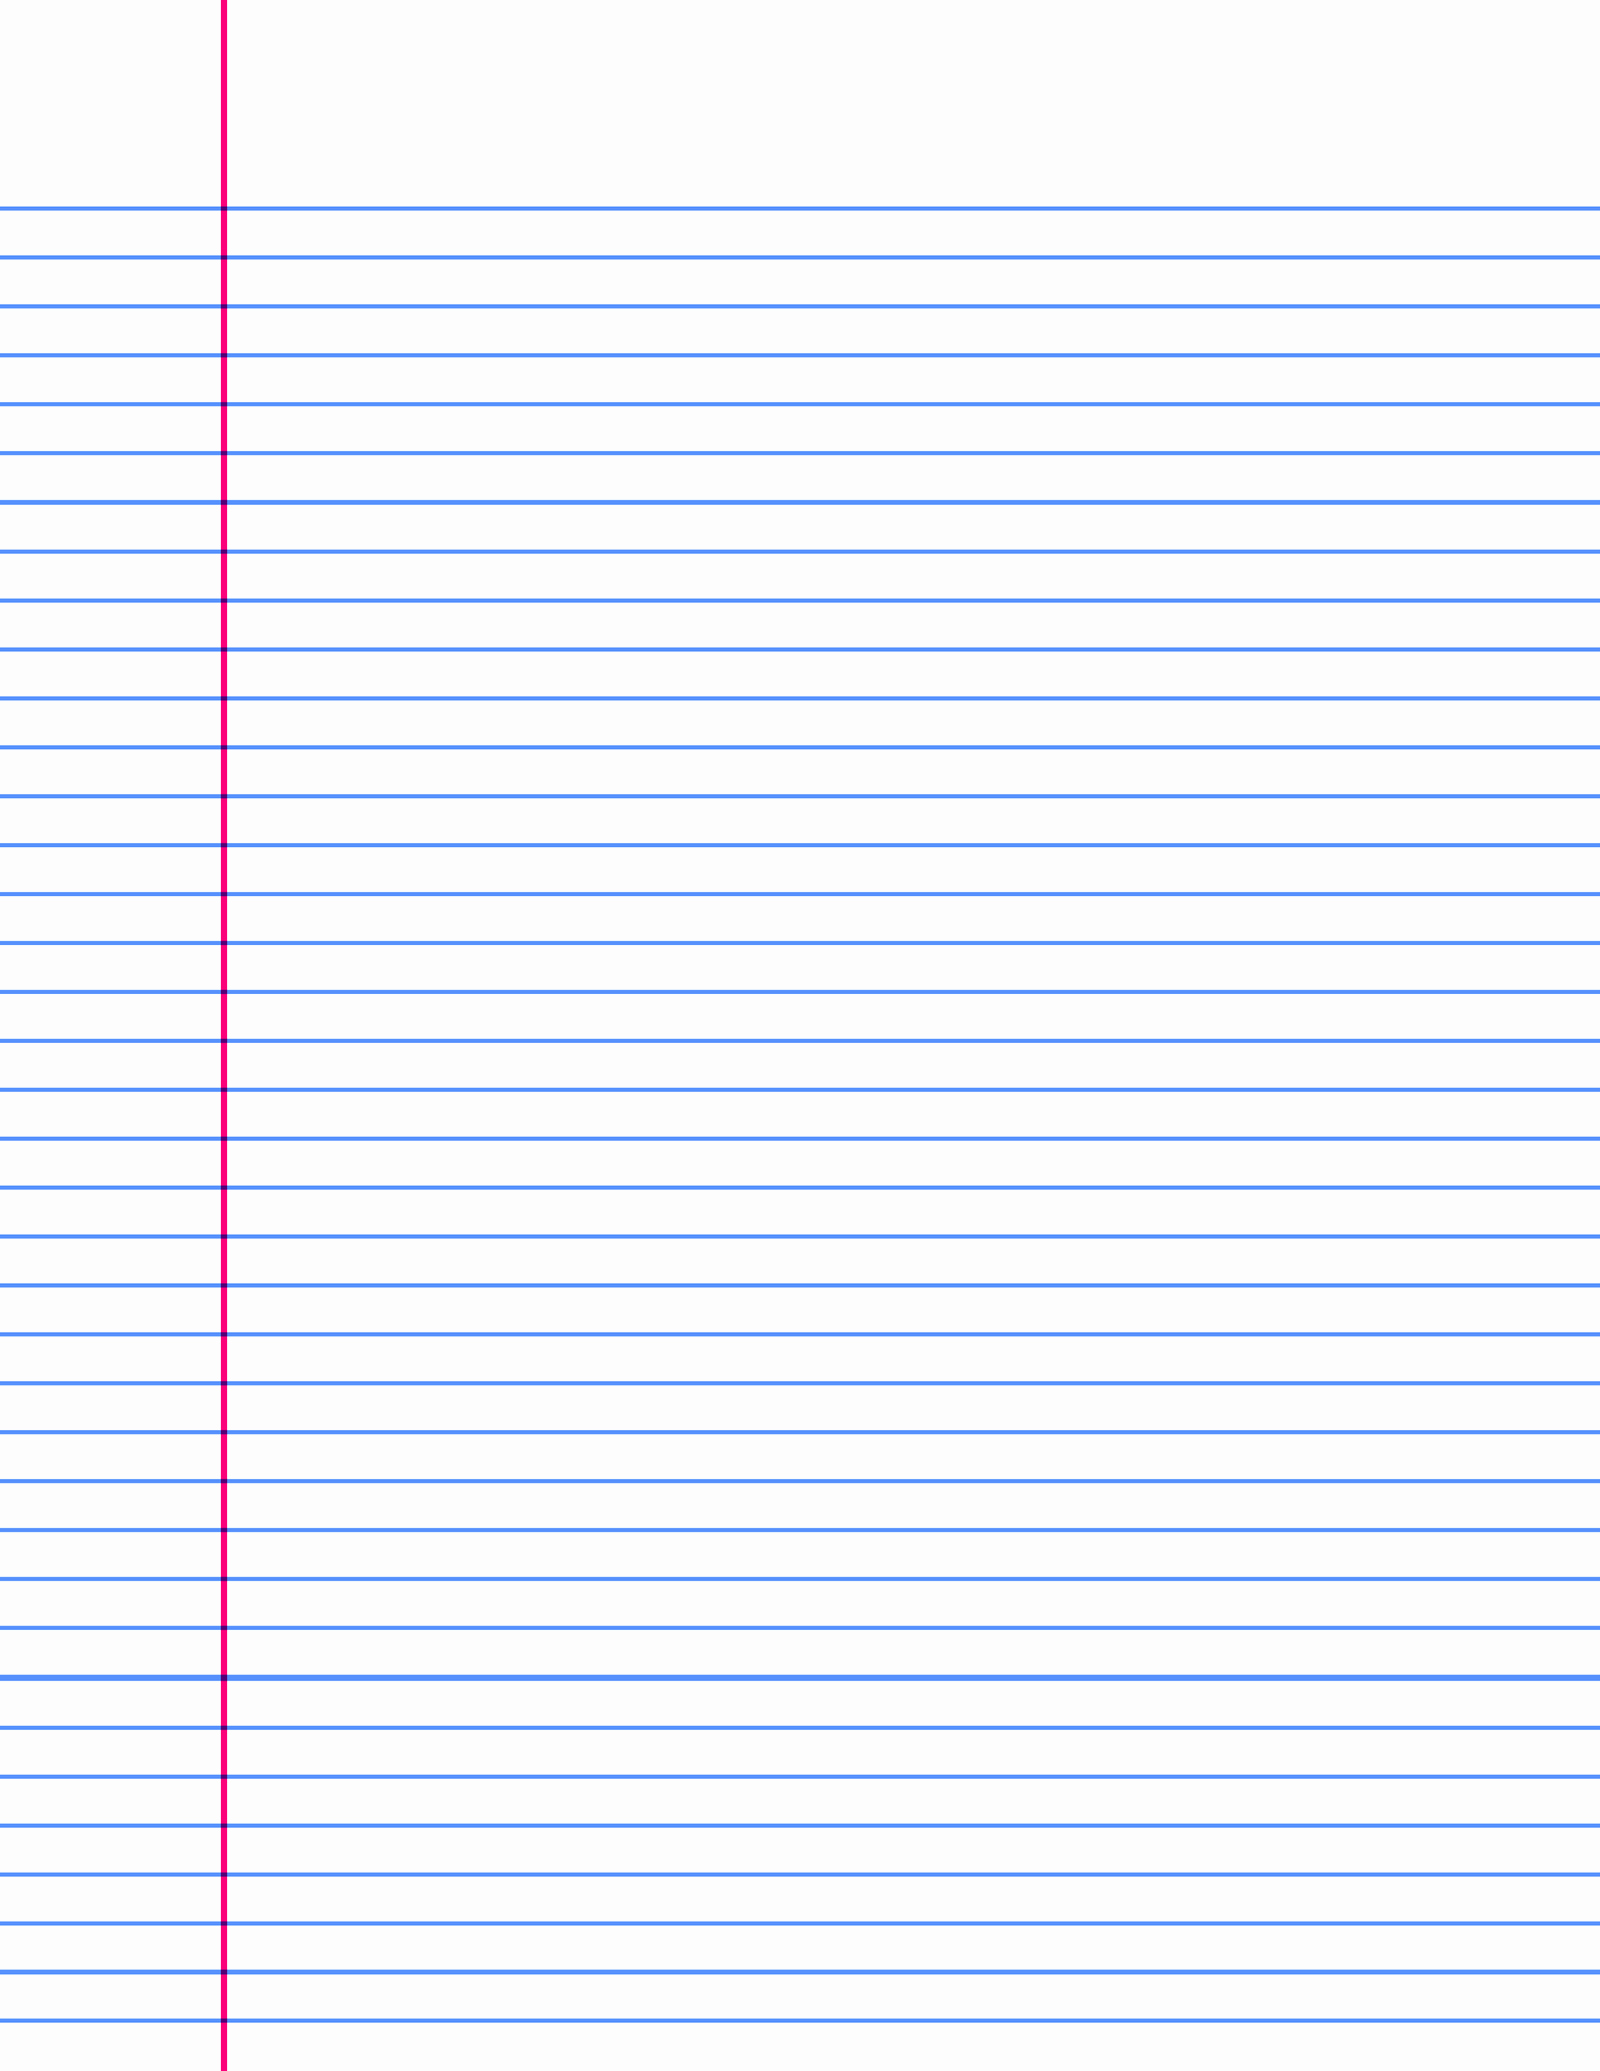 Free Printable Lined Paper Best Of A4 Lined Paper Image Lined Paper with Blue Lines College